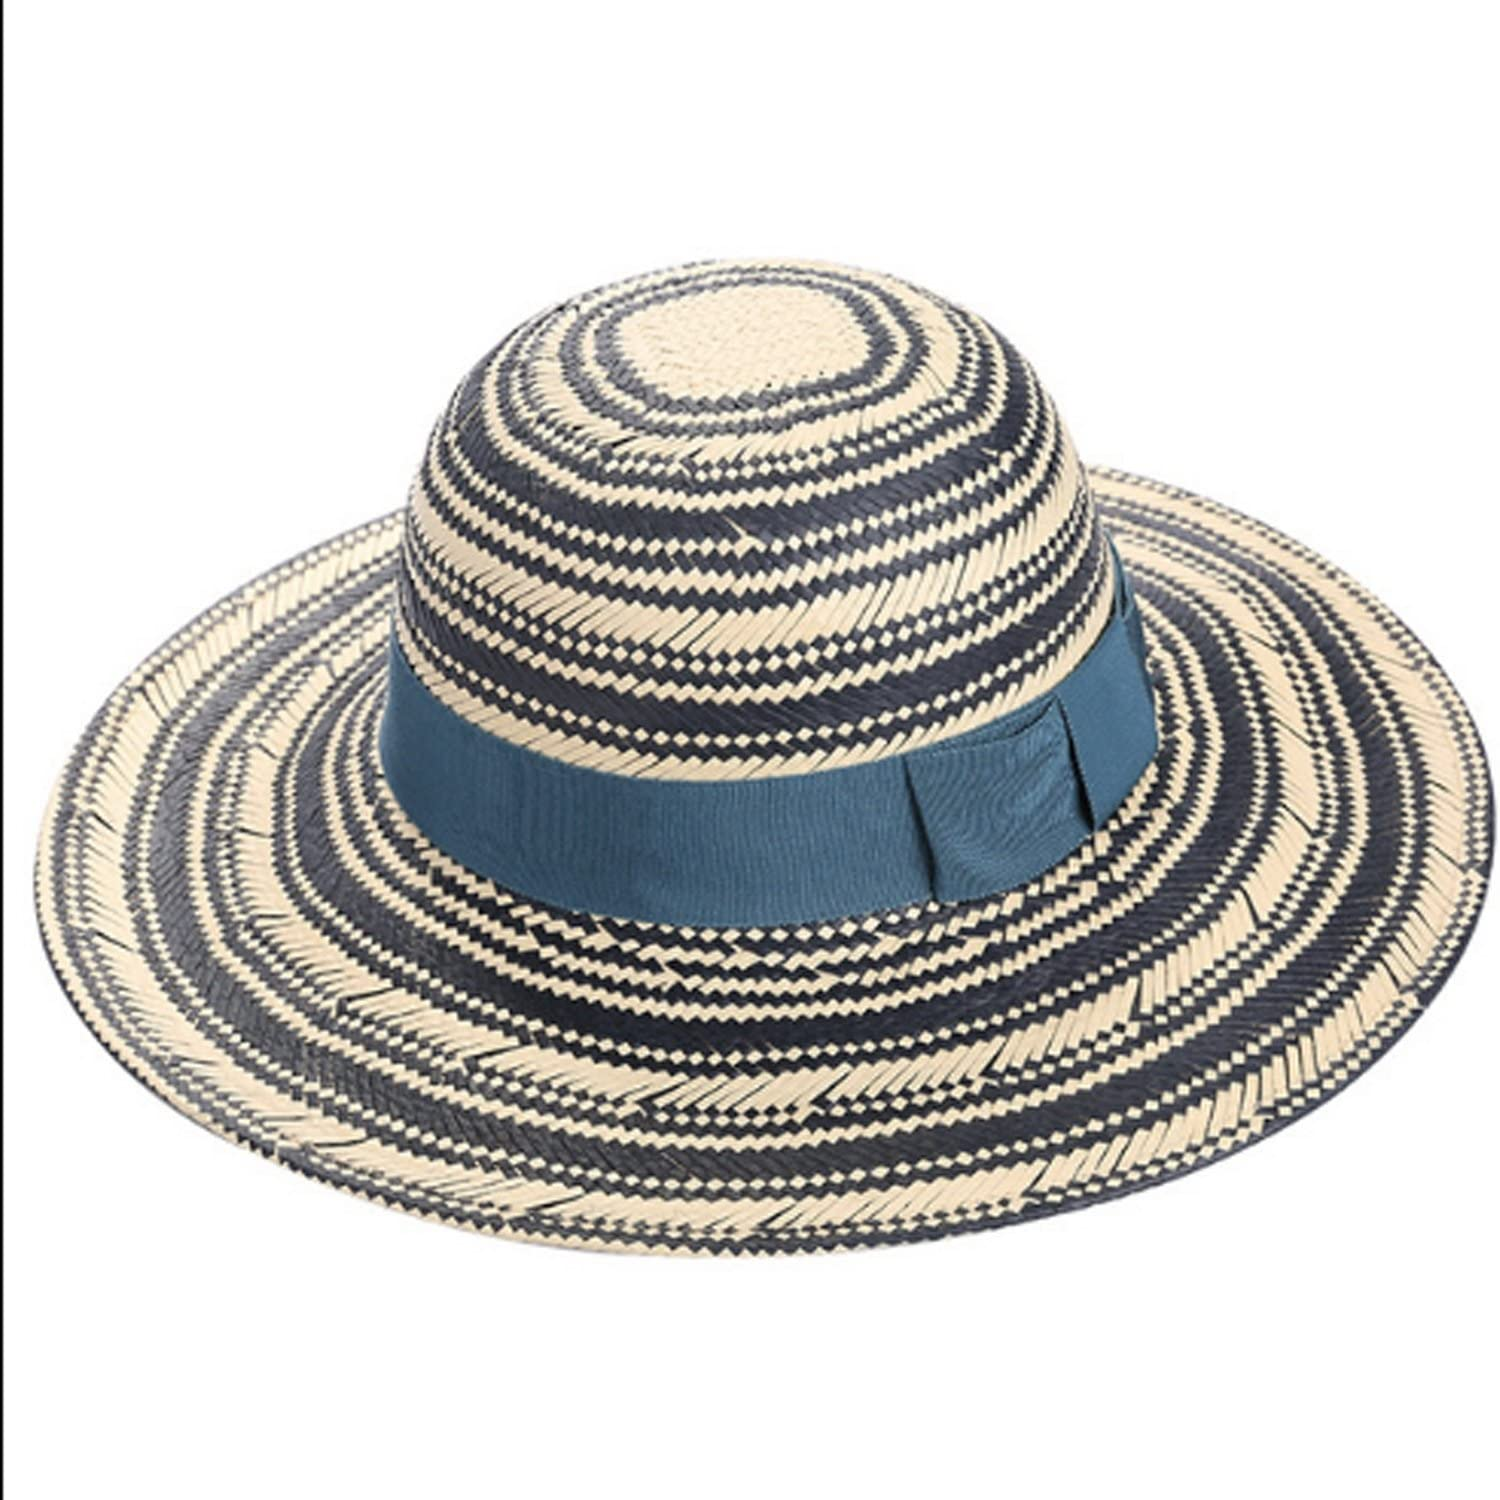 Hat Women Summer Leisure Classic Straw Hat Fashion Visor Travel Sunscreen (color   Multicolord, Size   M)